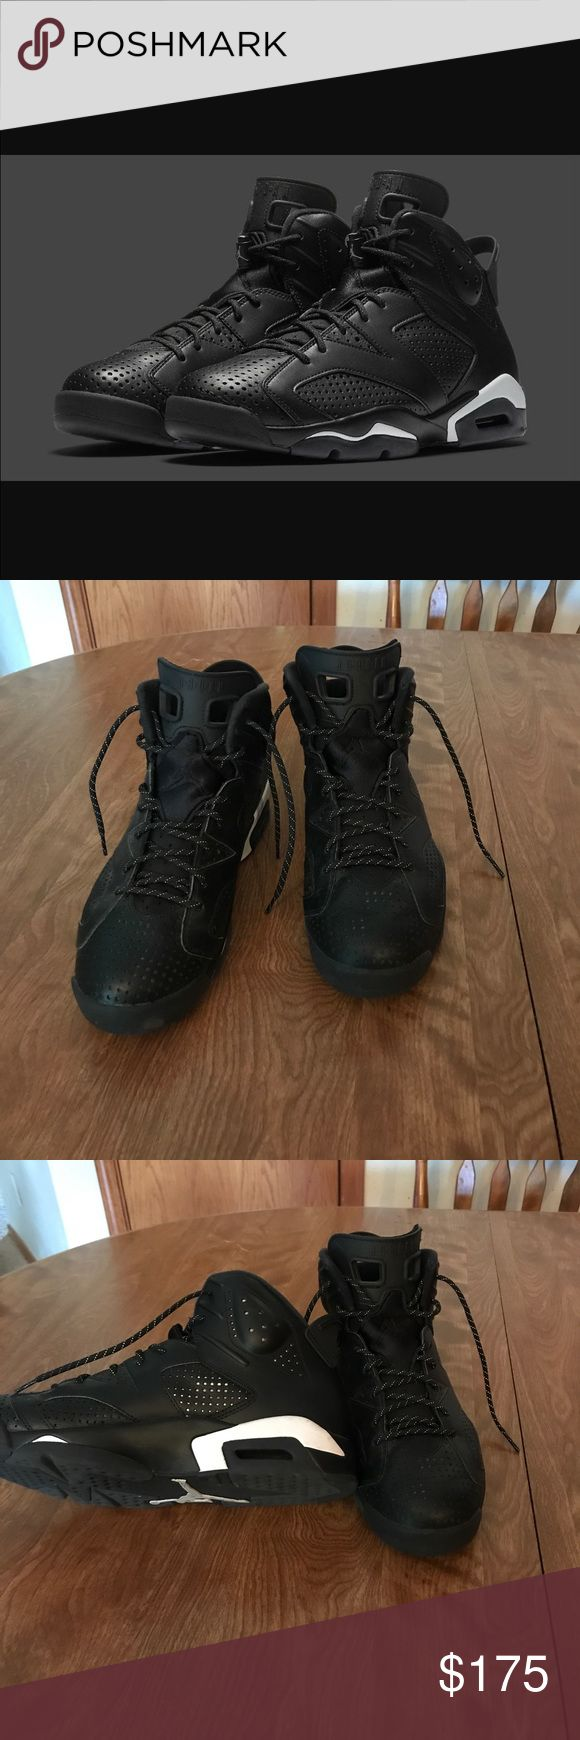 Jordan Black Cat 6 used I have worn these like 5 times but they are still in great shape. 9/10 Condition. I work indoors. 👍. All my shoes are authentic and they ship same day or first thing the next morning. Everytime!!  THESE COME WITH OG BOX Jordan Shoes Sneakers